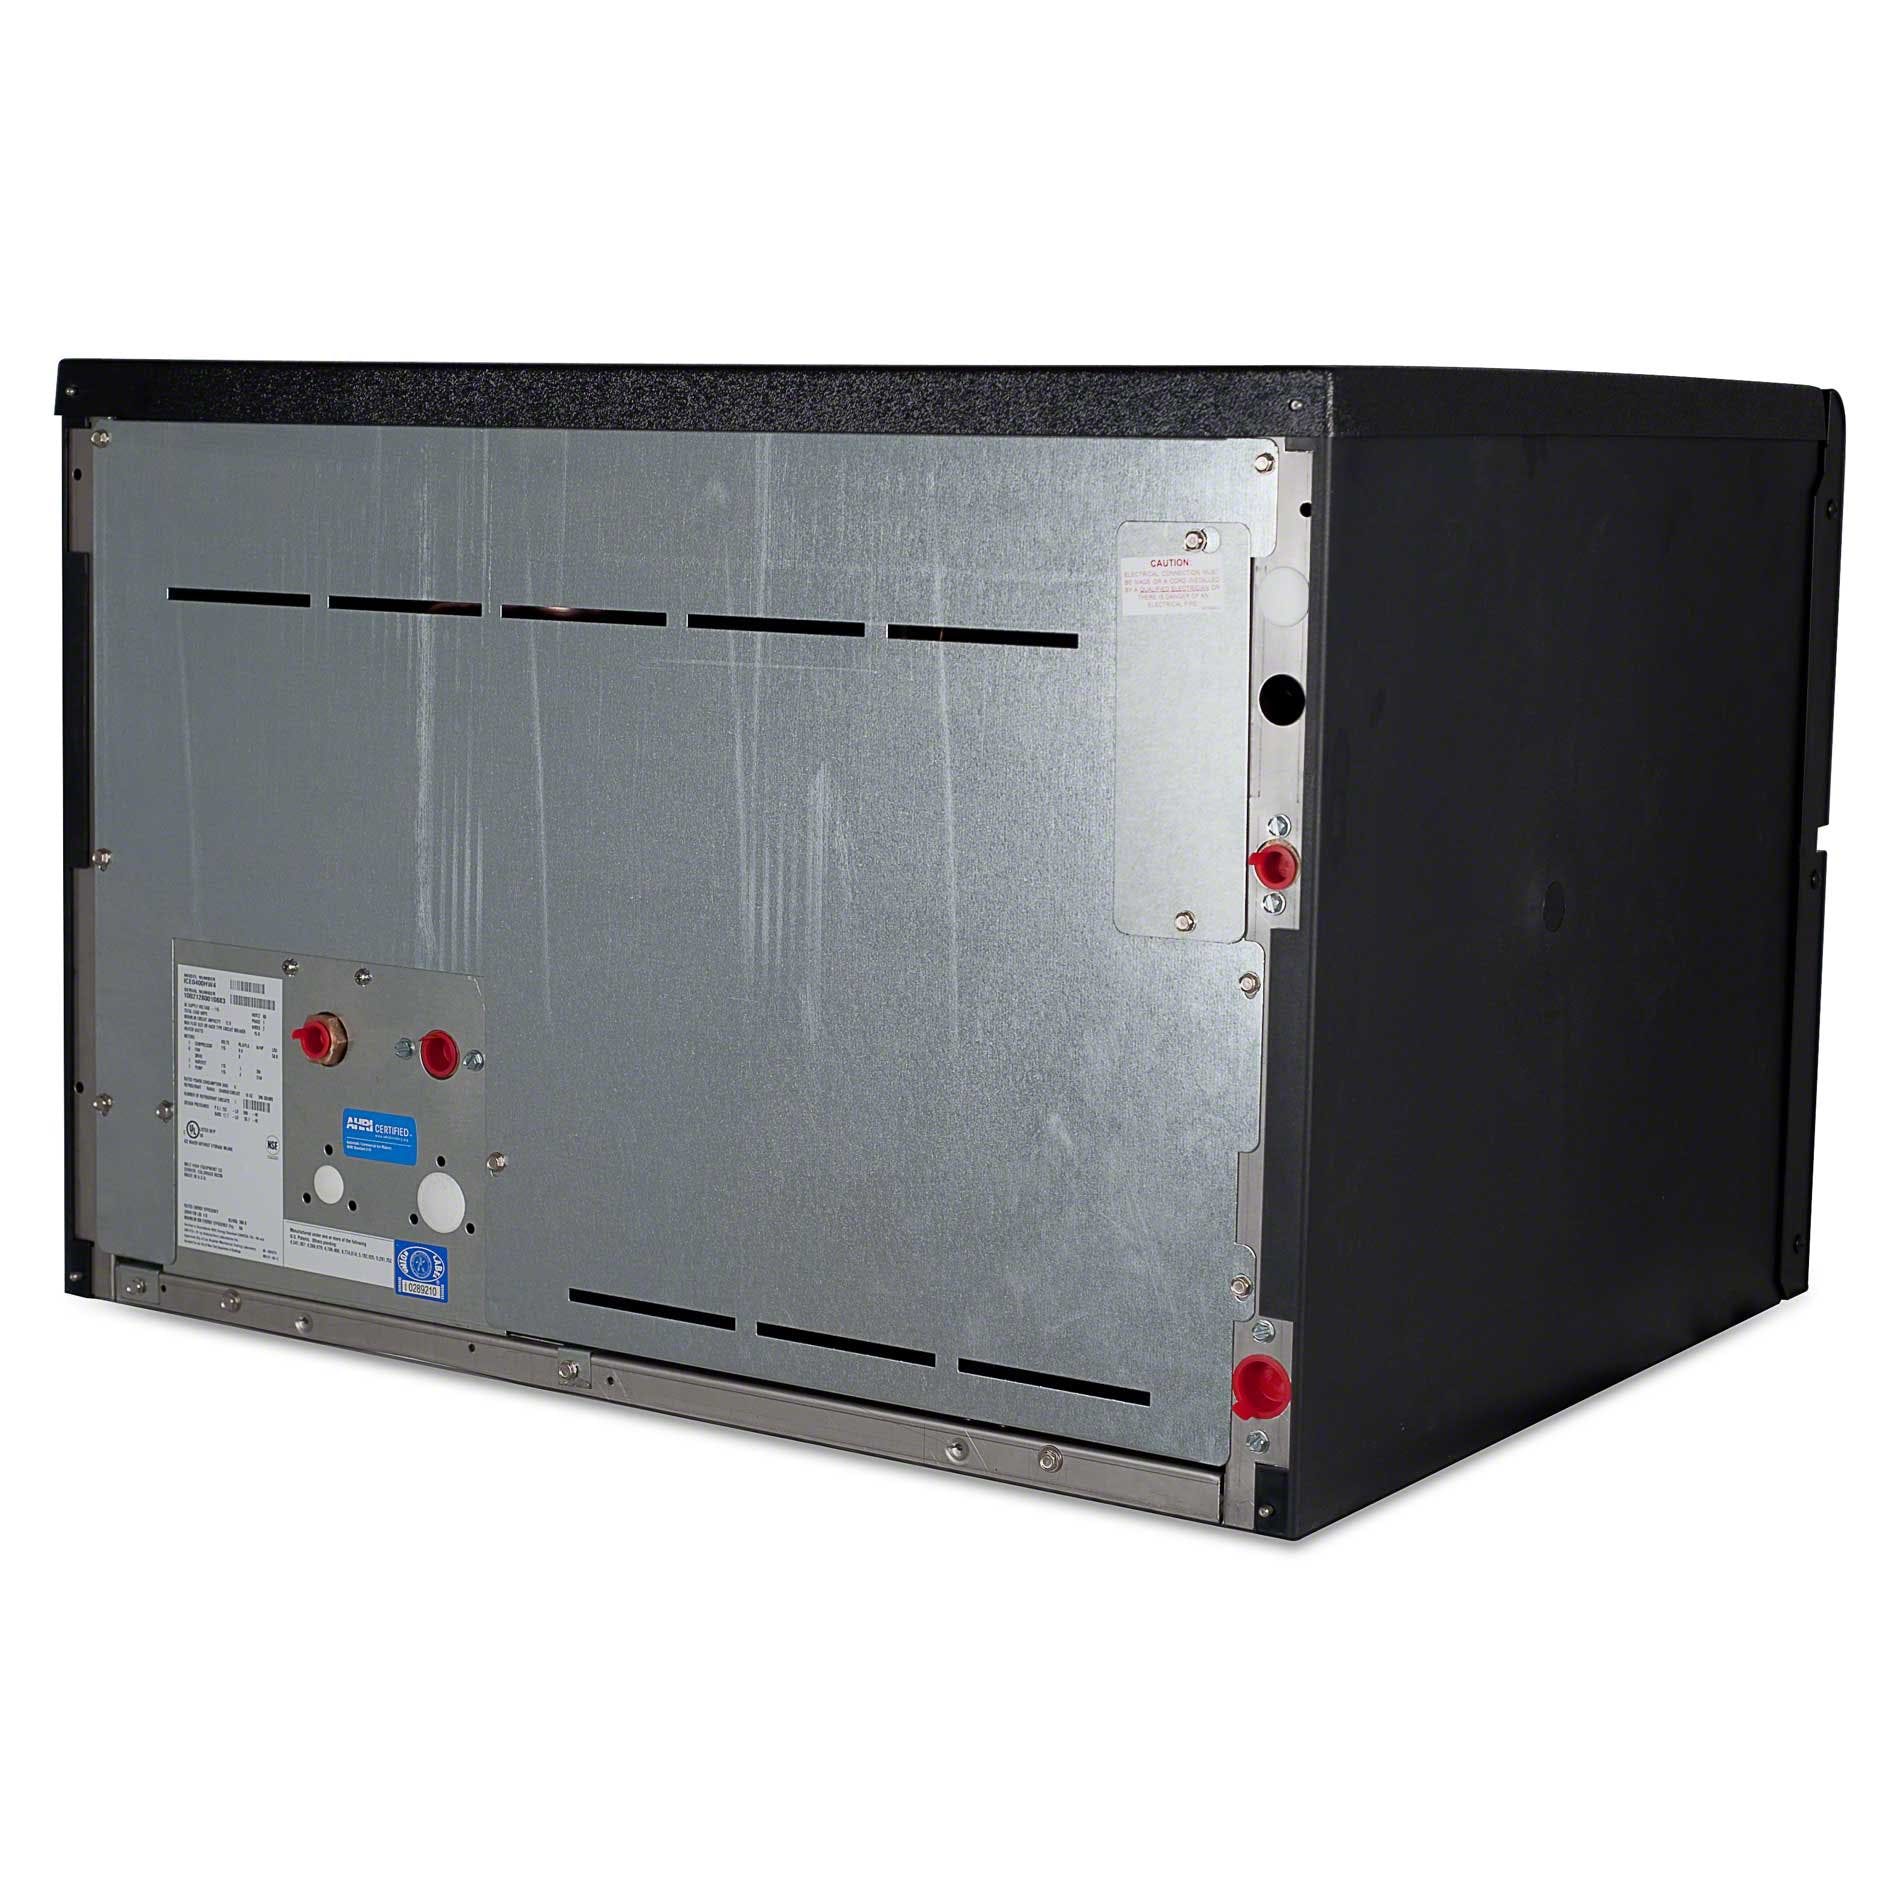 Ice-O-Matic - ICE0400HW 496 lb Half Cube Ice Machine Ice machine sold by Food Service Warehouse